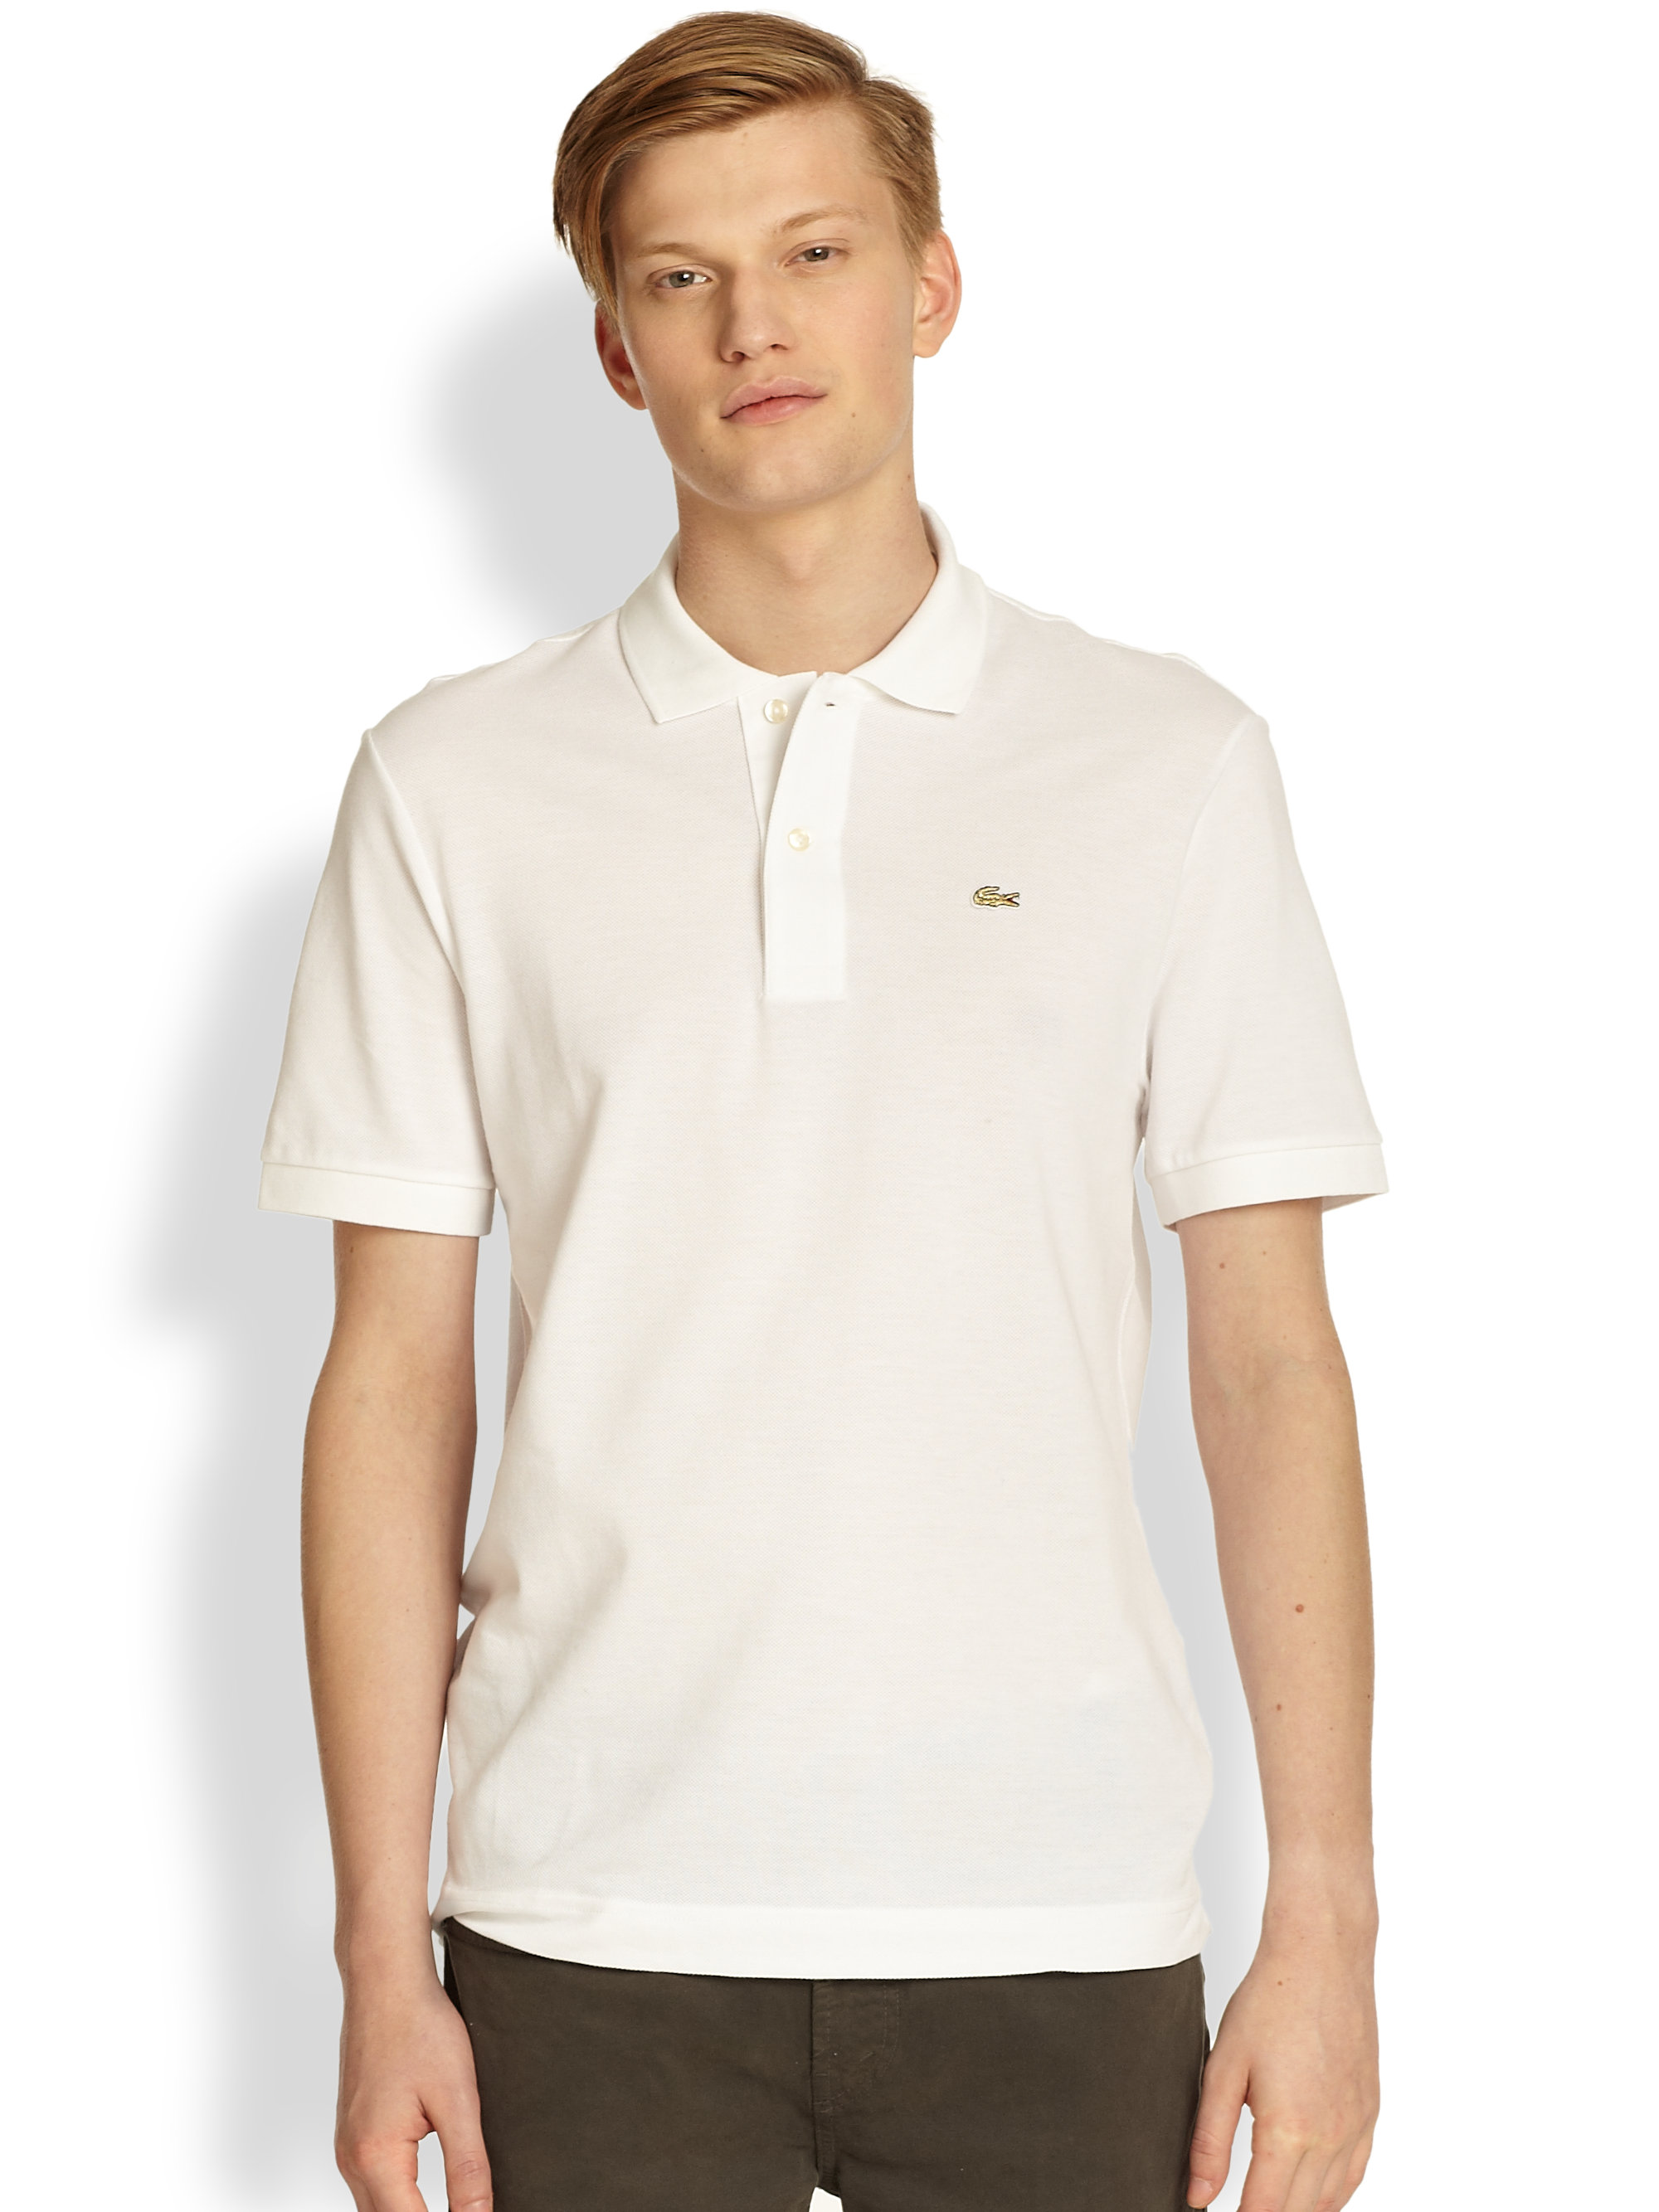 Lacoste cotton pique polo shirt in beige for men white for Cotton polo shirts for men